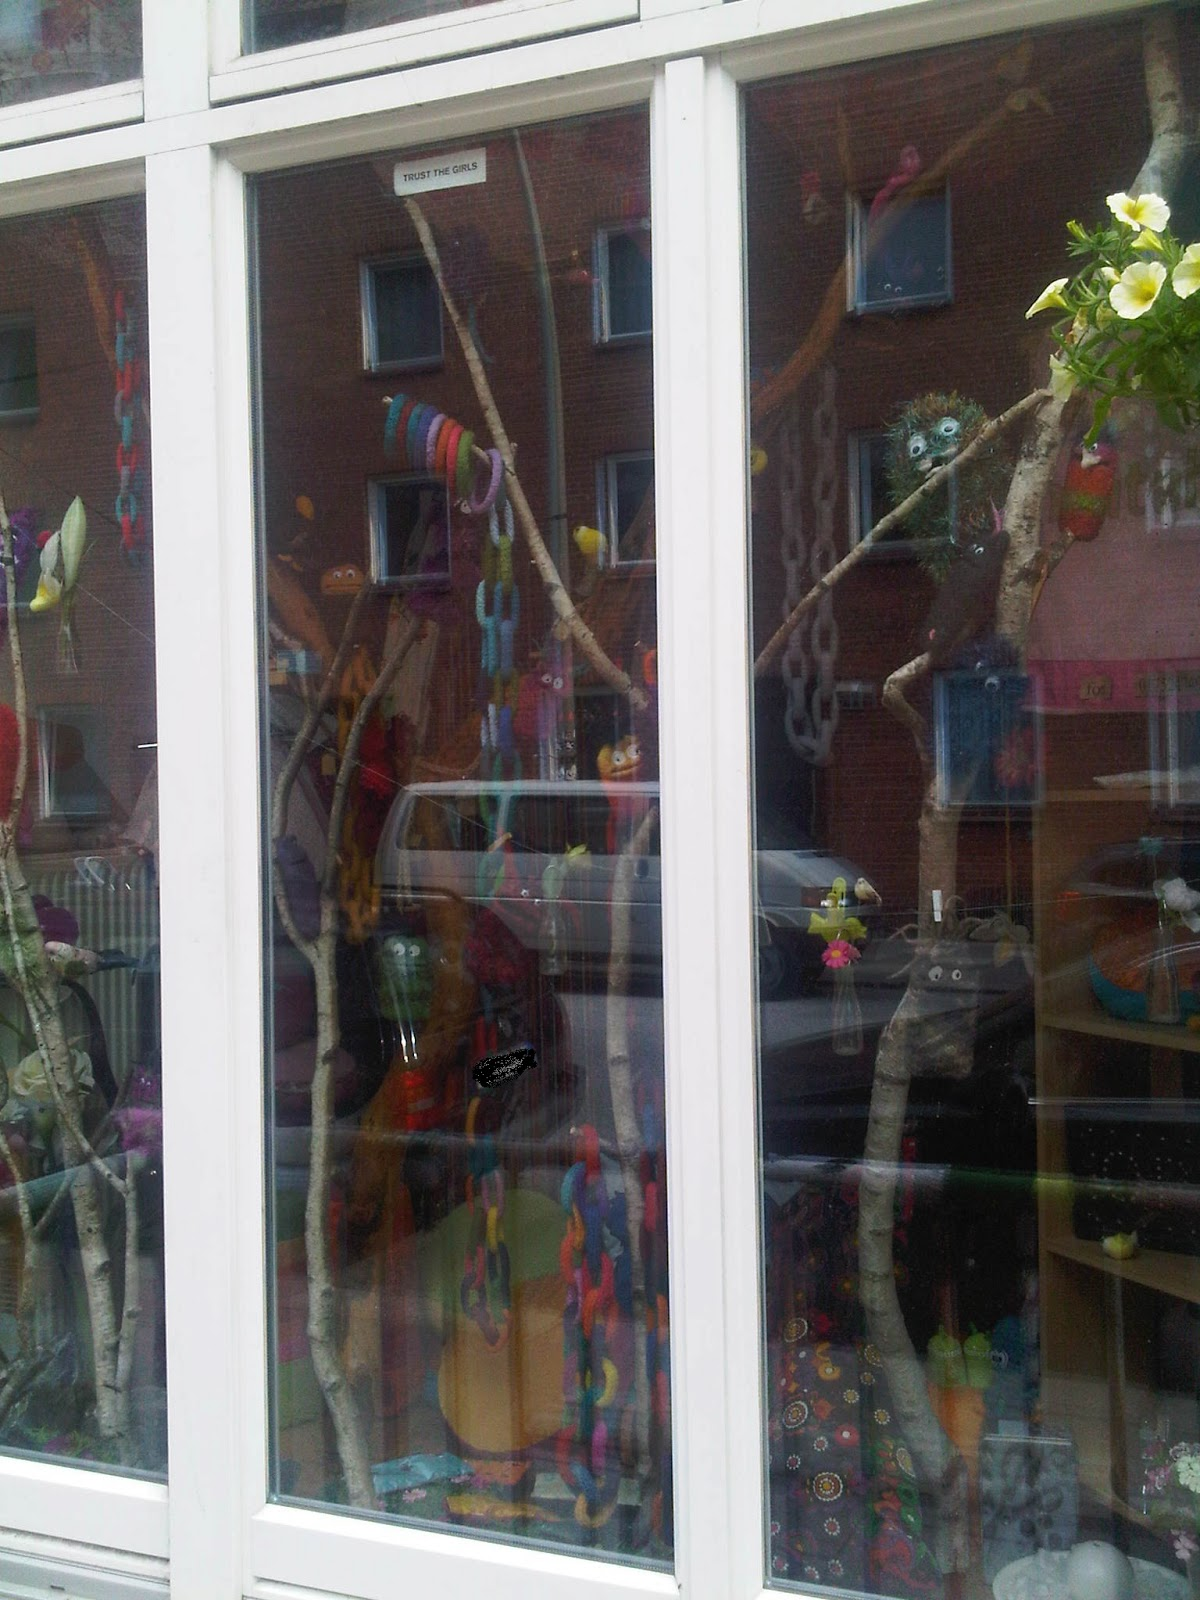 Schaufenster mit Strickwaren. Strickfiguren, Ästen zur Deko mit Strickwaren.